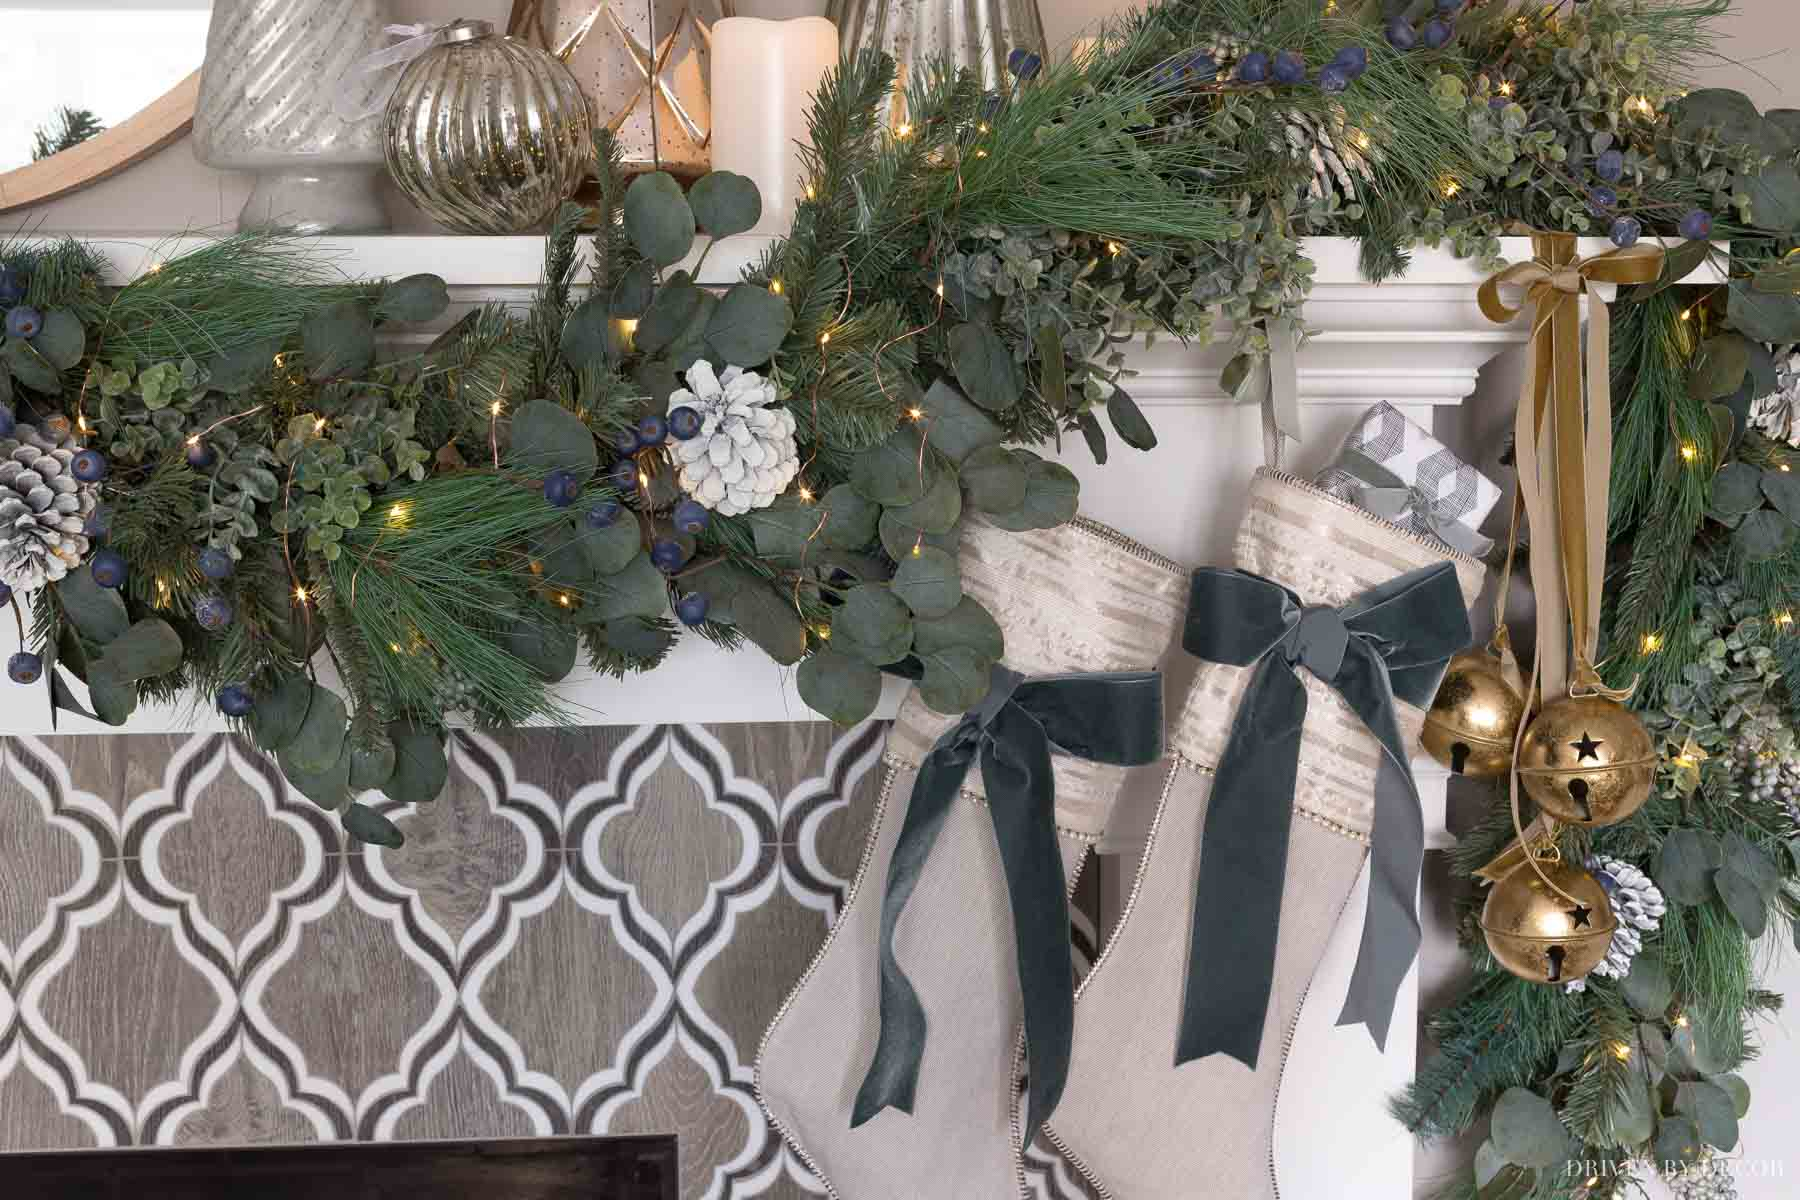 Our fireplace mantel decorated for Christmas with a greenery swag, stockings, jingle bells, and mercury glass trees